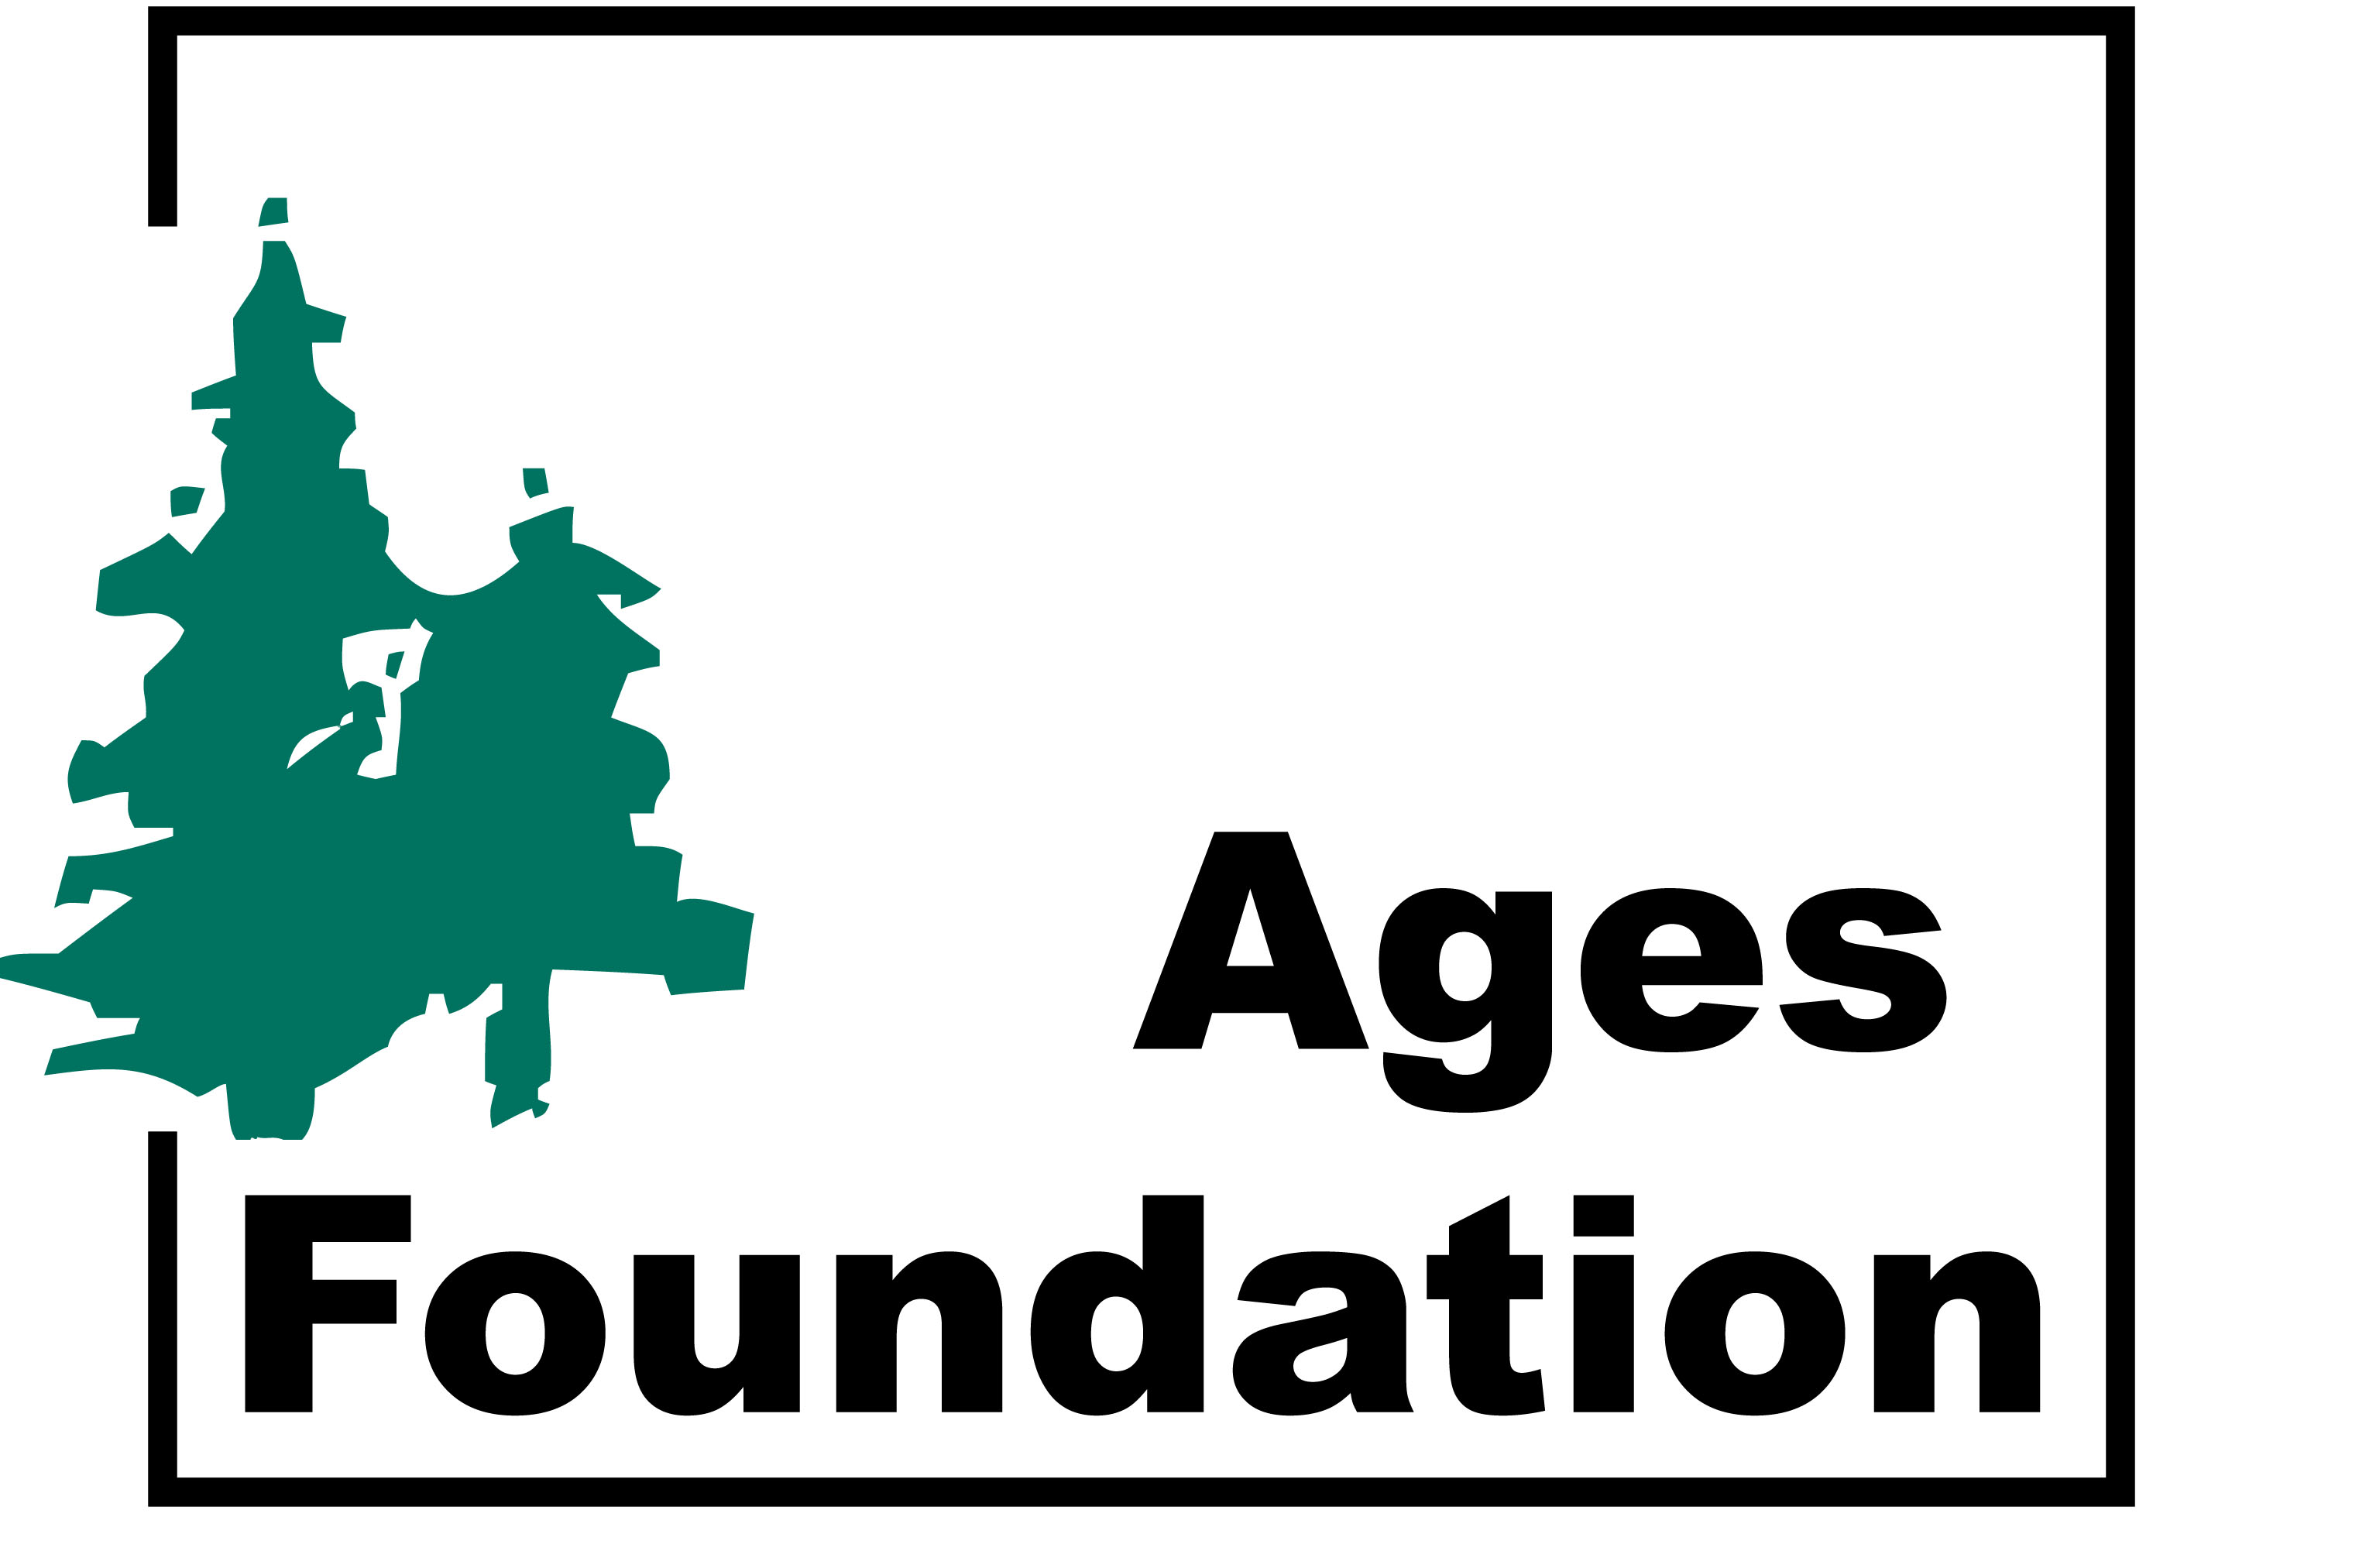 Ages Foundation logo